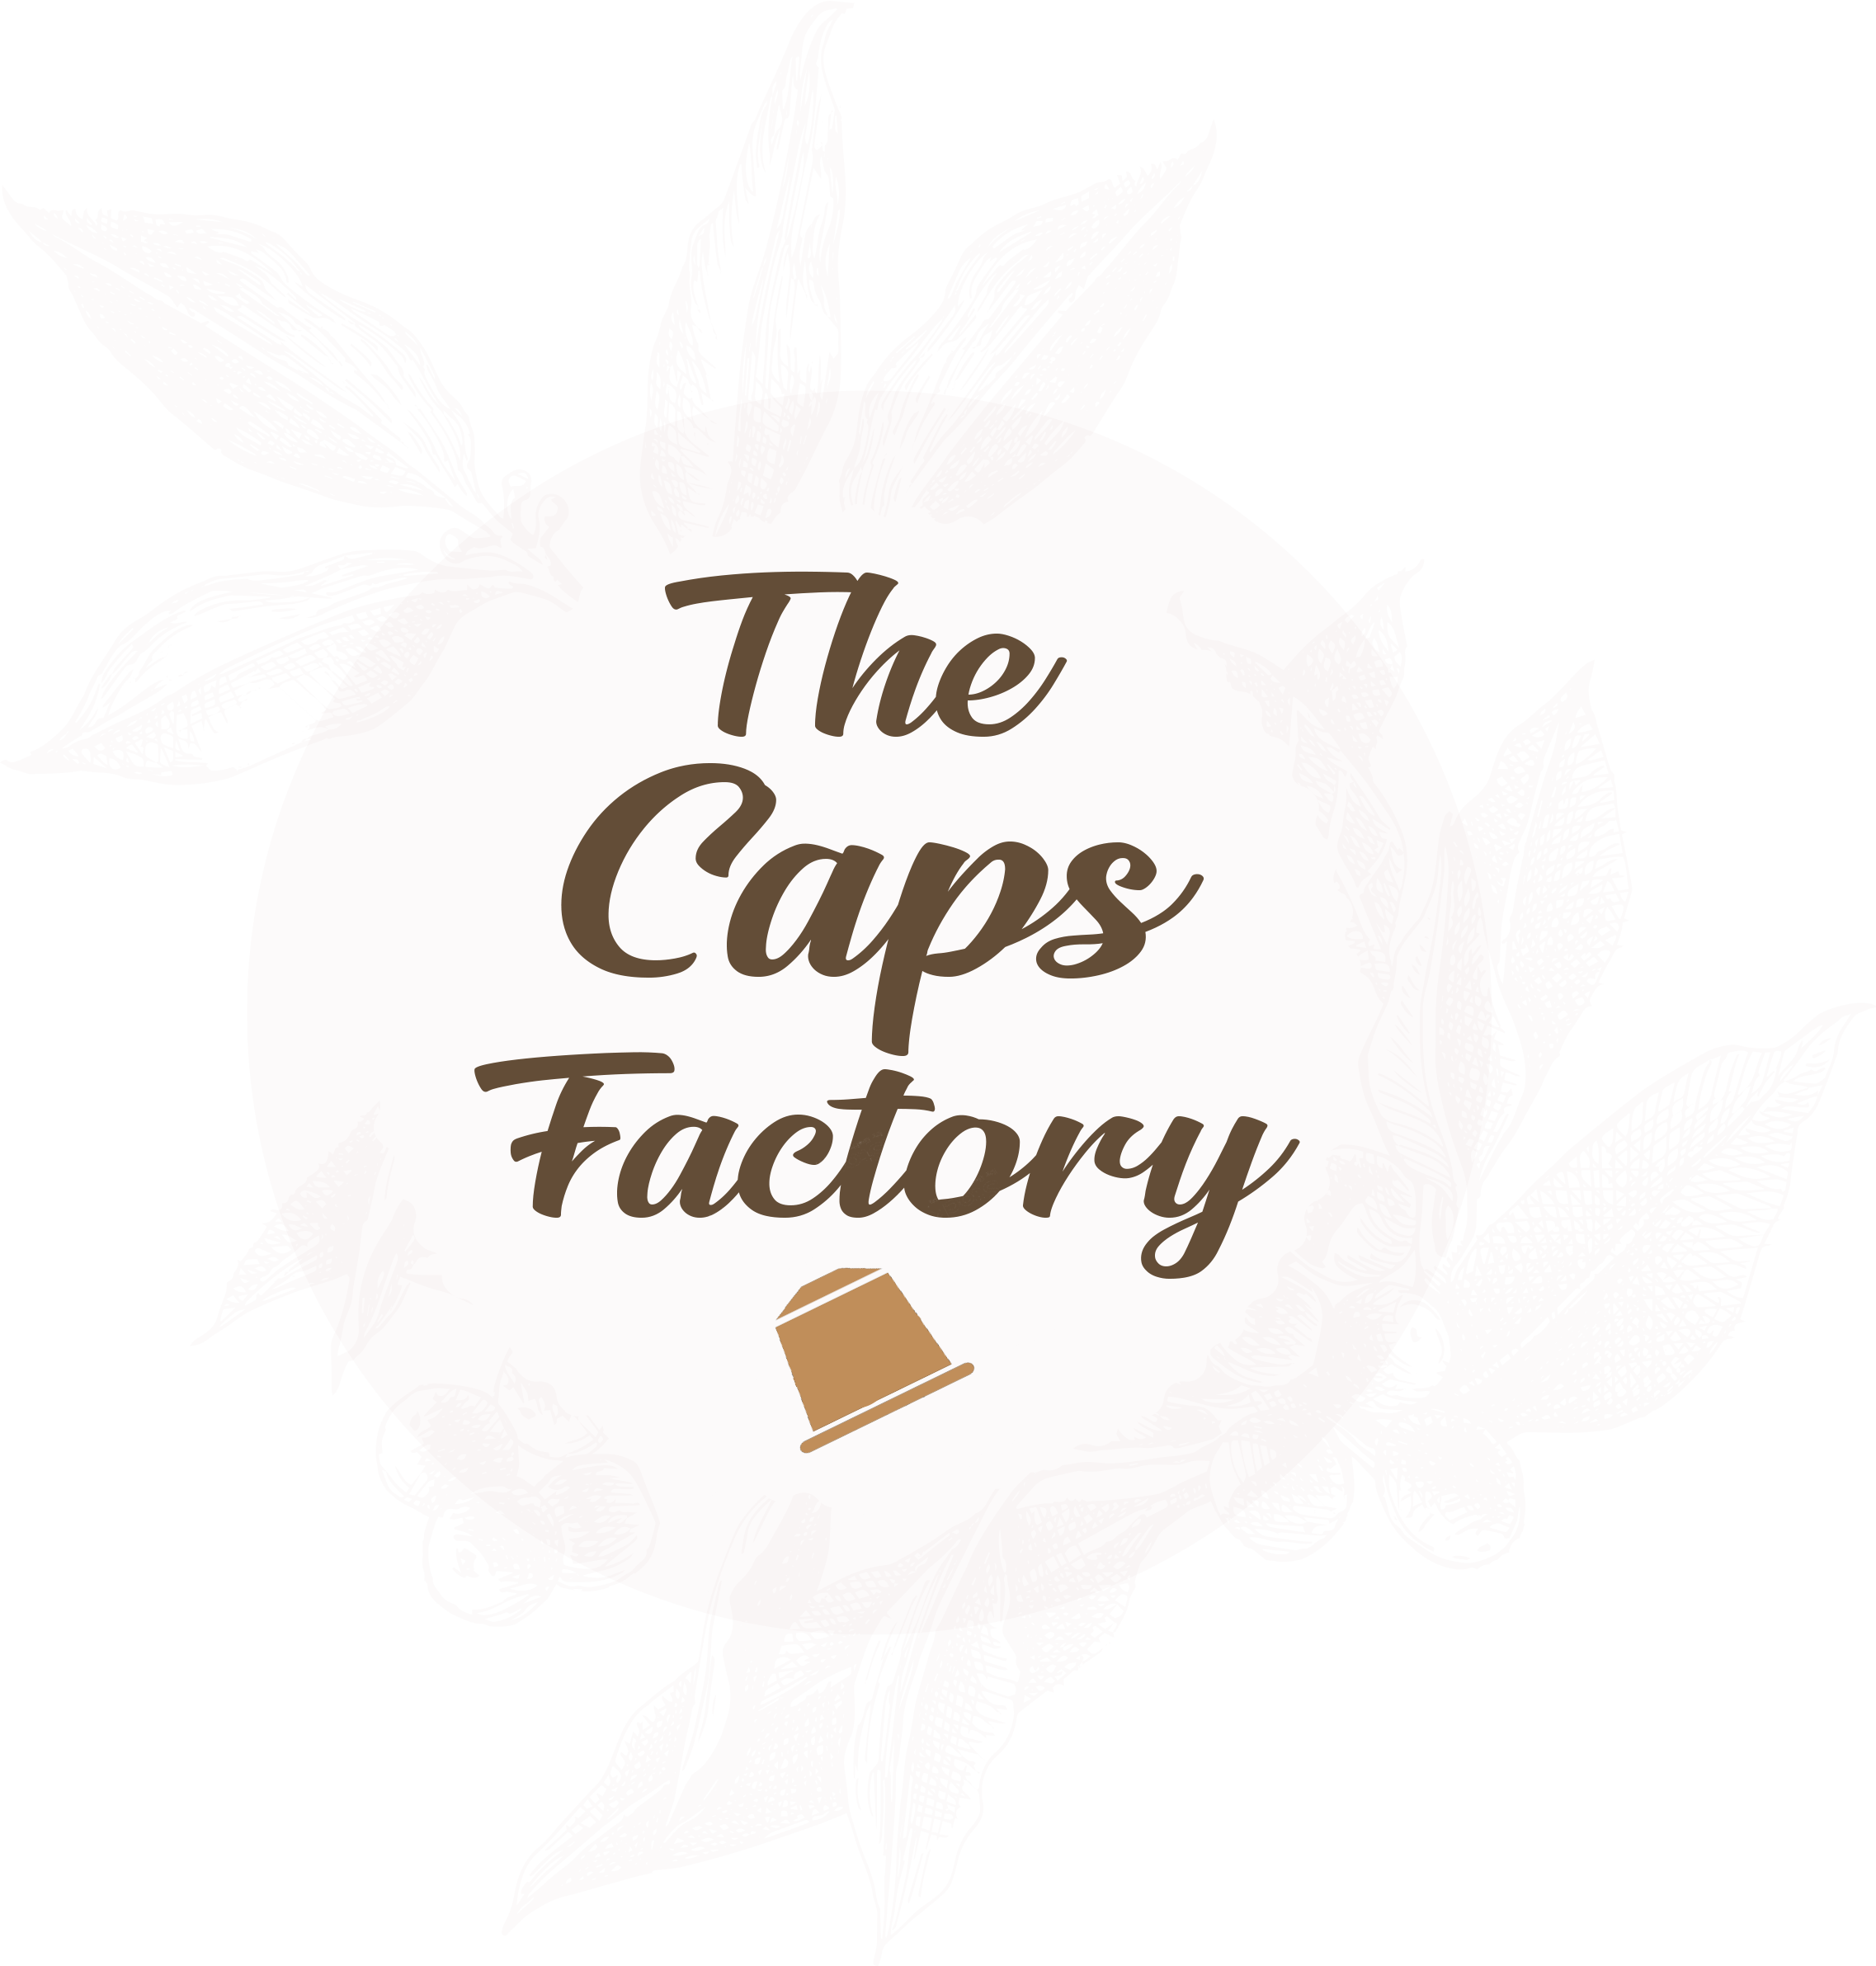 The Caps Factory